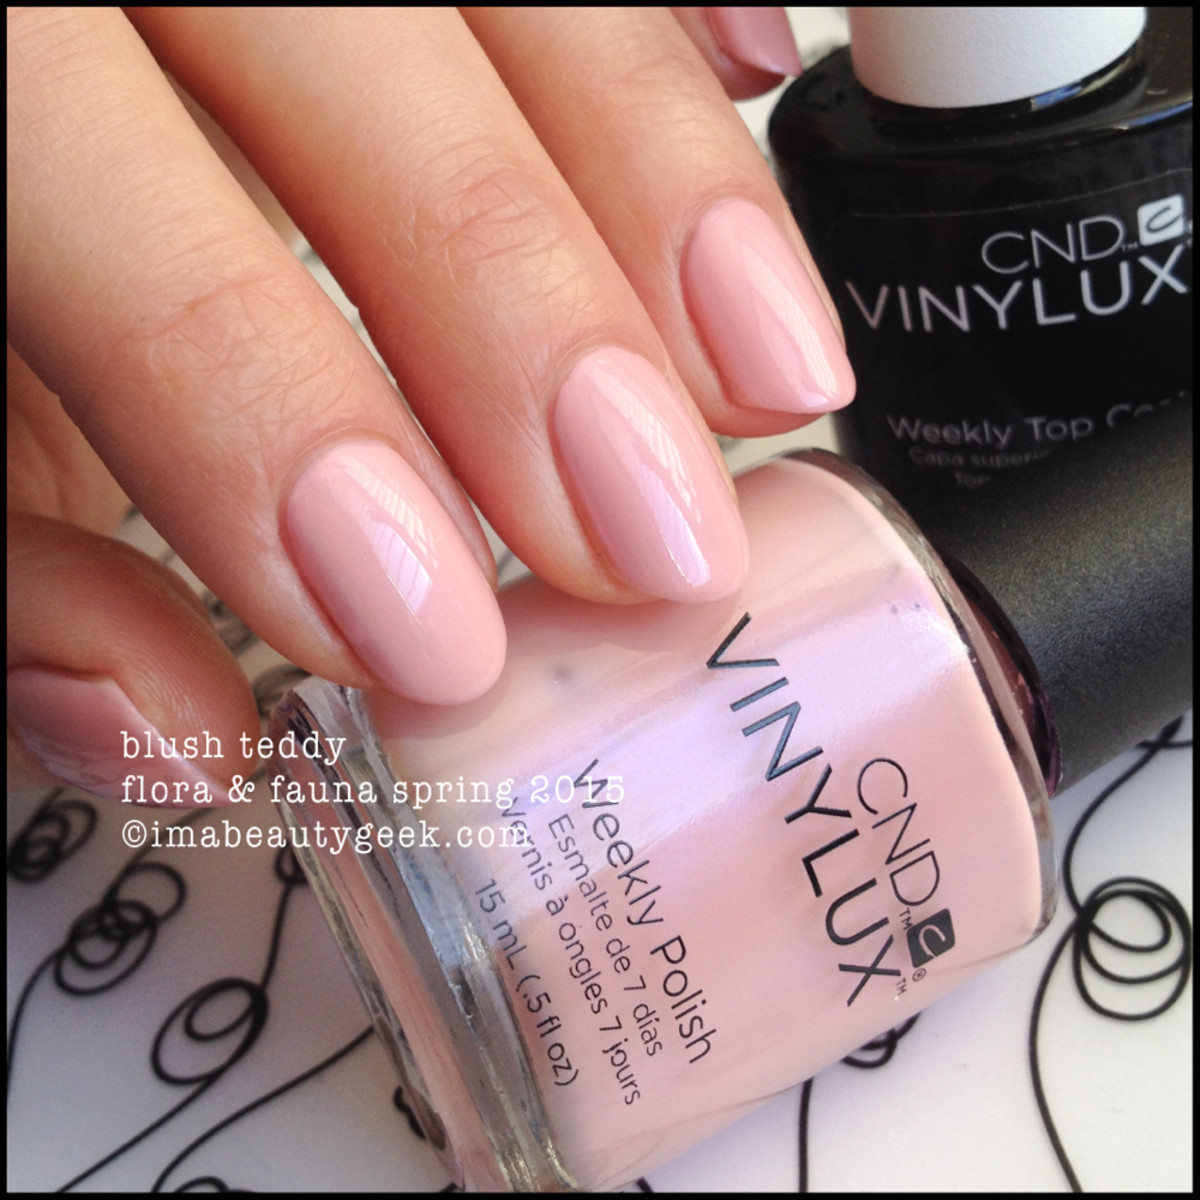 CND Vinylux Blush Teddy Spring 2015 Flora and Fauna Collection